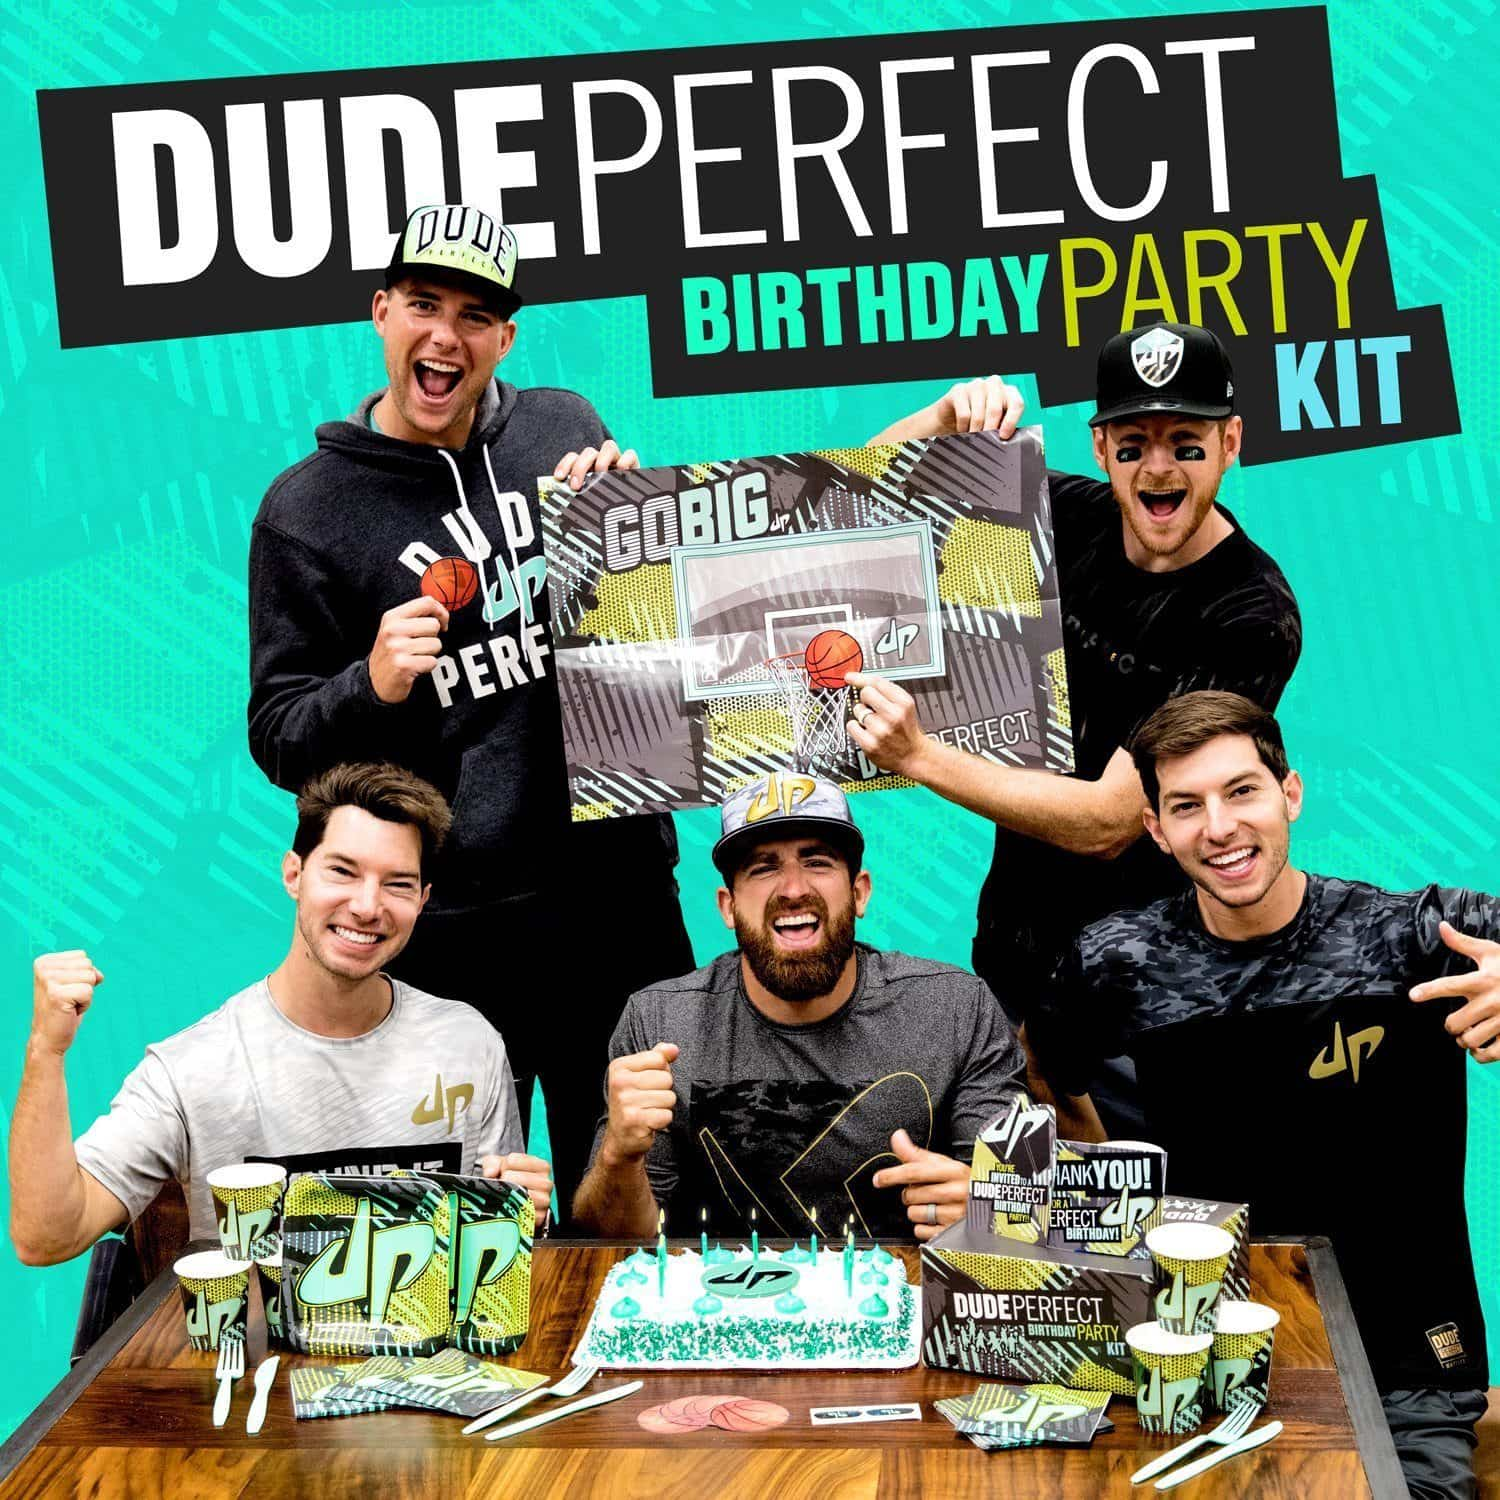 Dude Perfect Birthday Kit